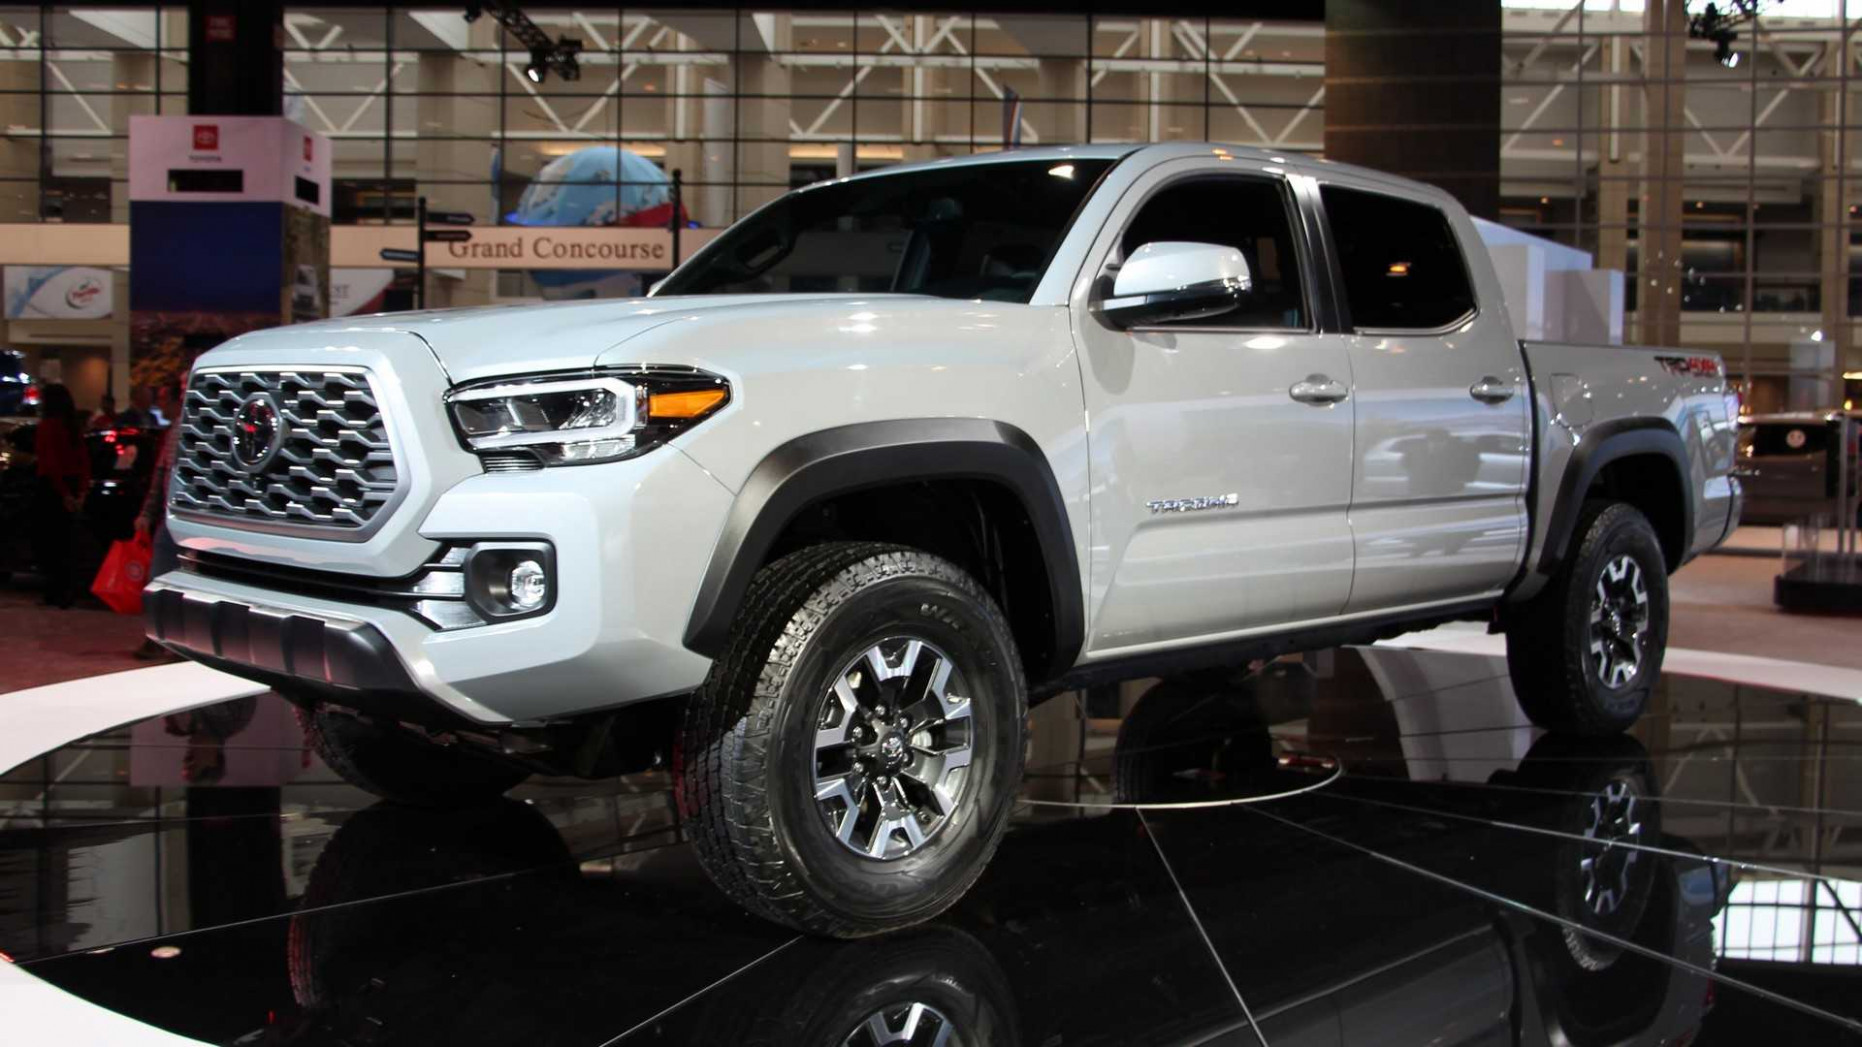 9 The Toyota Tacoma Trd Pro 9 Specs - Car Review 9 : Car ..